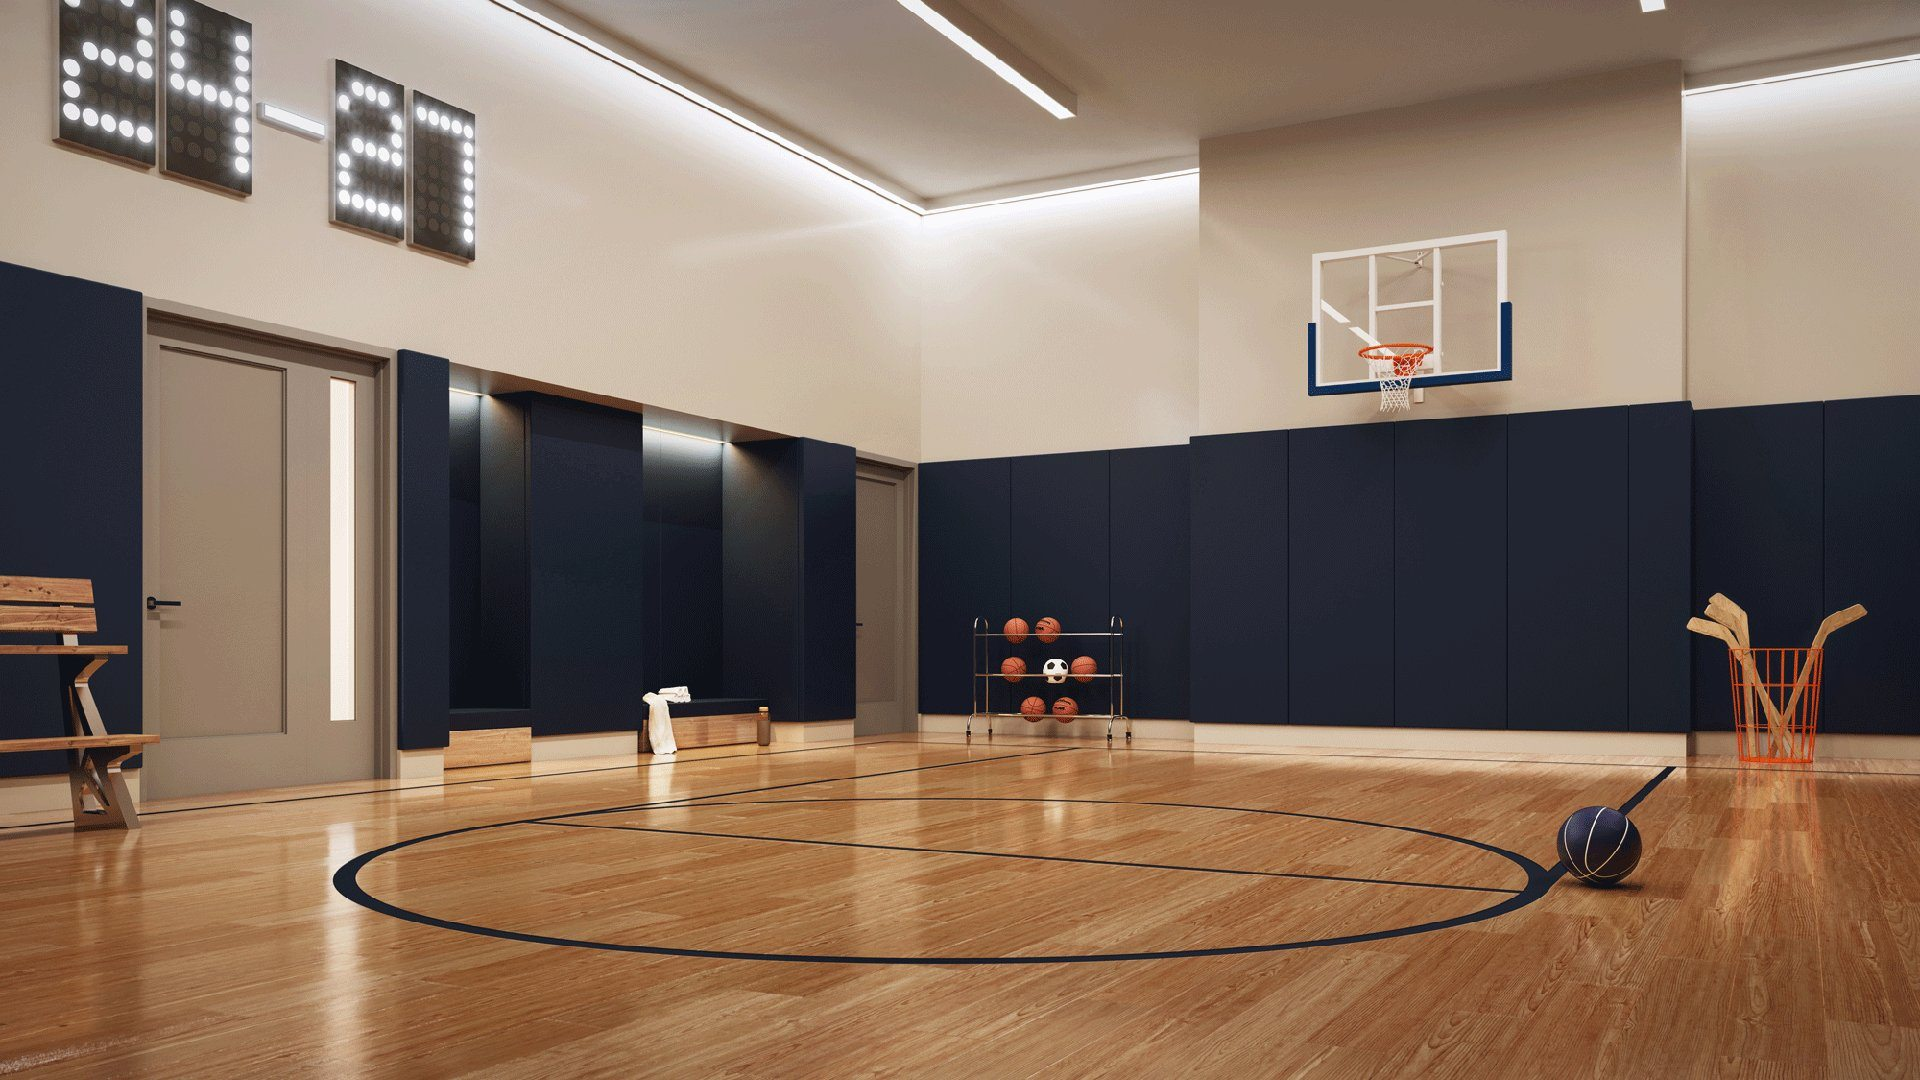 المجرف دون قصد تنورة Jersey City Indoor Basketball Courts Microvoadores Com